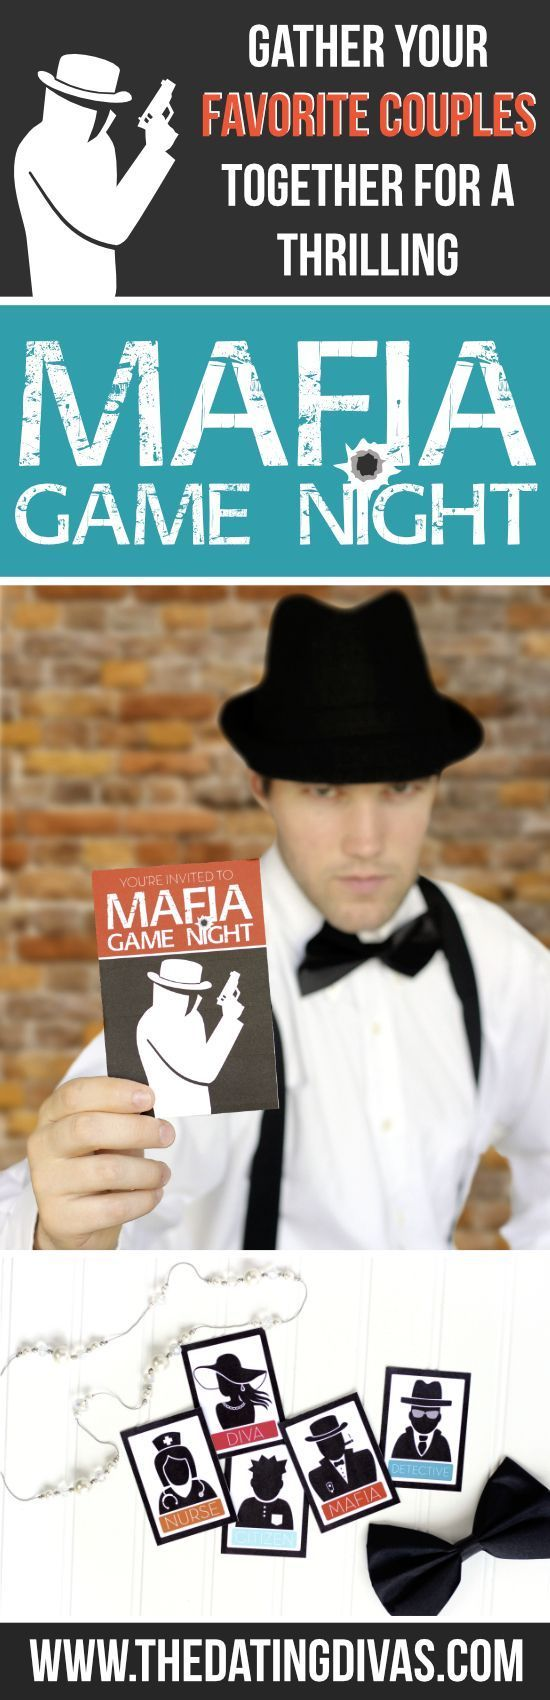 Mafia Game Night Couples game night, Game night parties